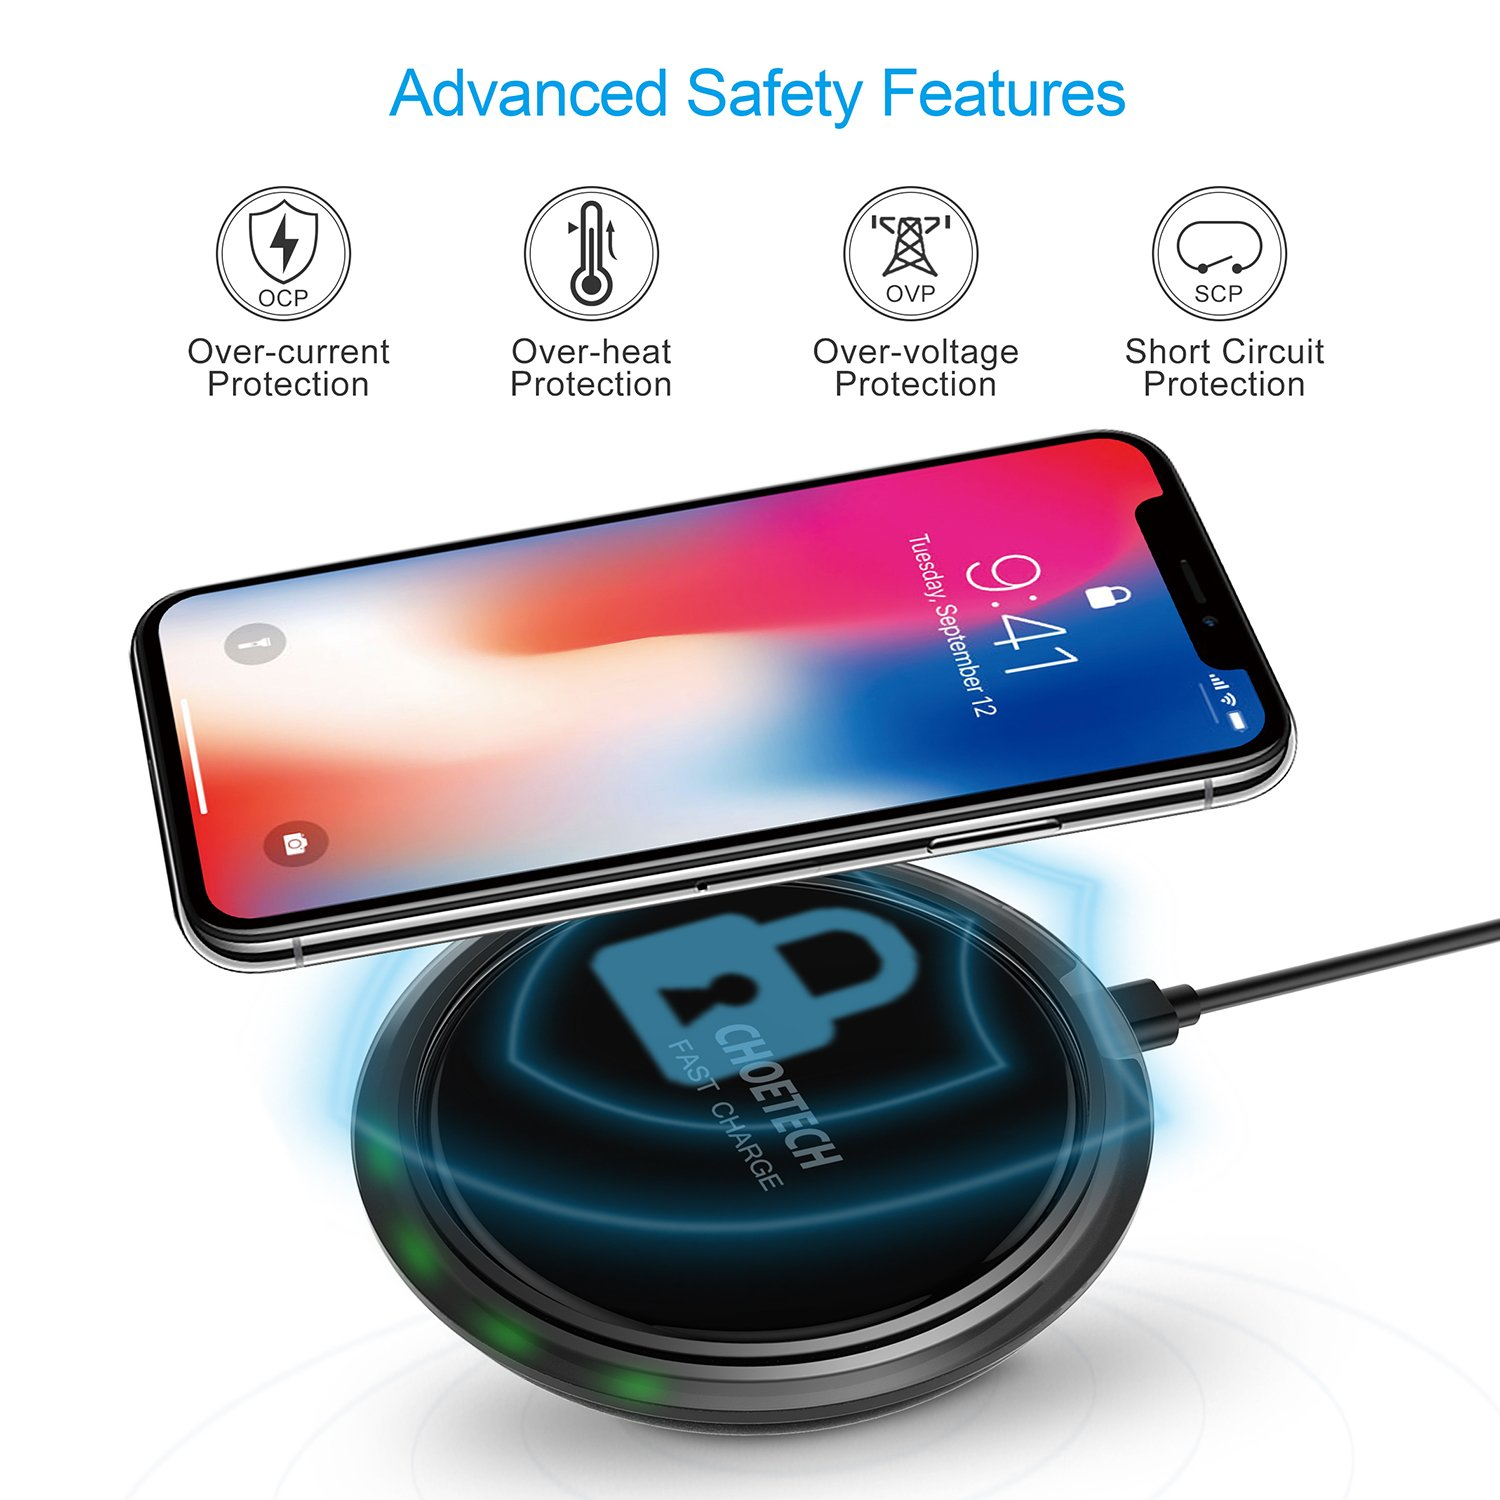 CHOETECH Wireless Charger, 7.5W Qi Fast Wireless Charger Pad Compatible iPhone X/8/8 Plus,10W Fast Charging Compatible Samsung Galaxy S9 S8 S9 Plus Note 8 (QC3.0 AC Adapter Included) by CHOETECH (Image #2)